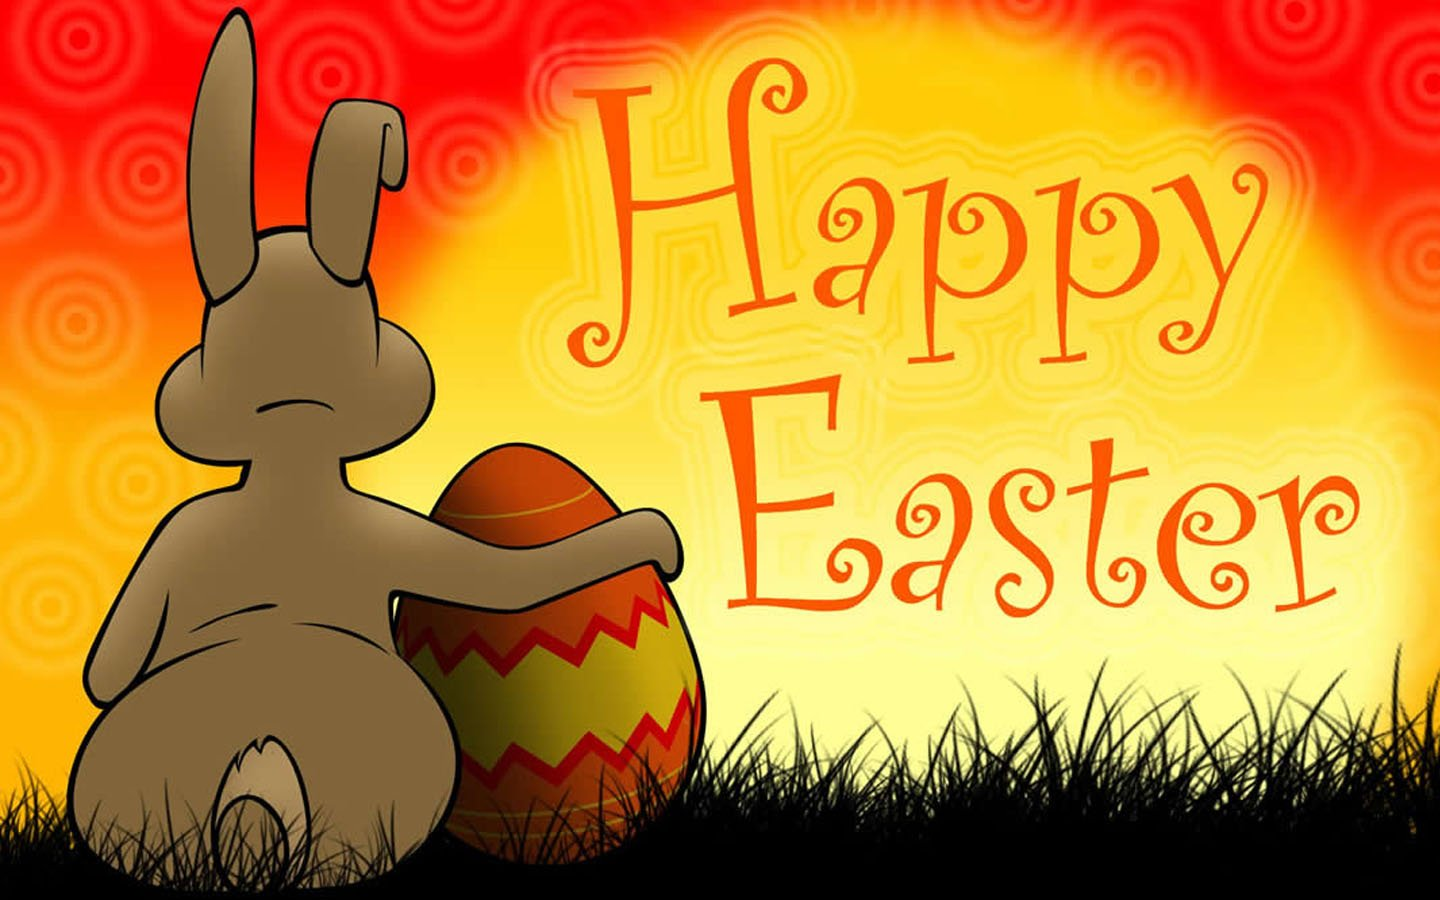 Happy Easter Wallpapers Easter Desktop Backgrounds Desktop 1440x900